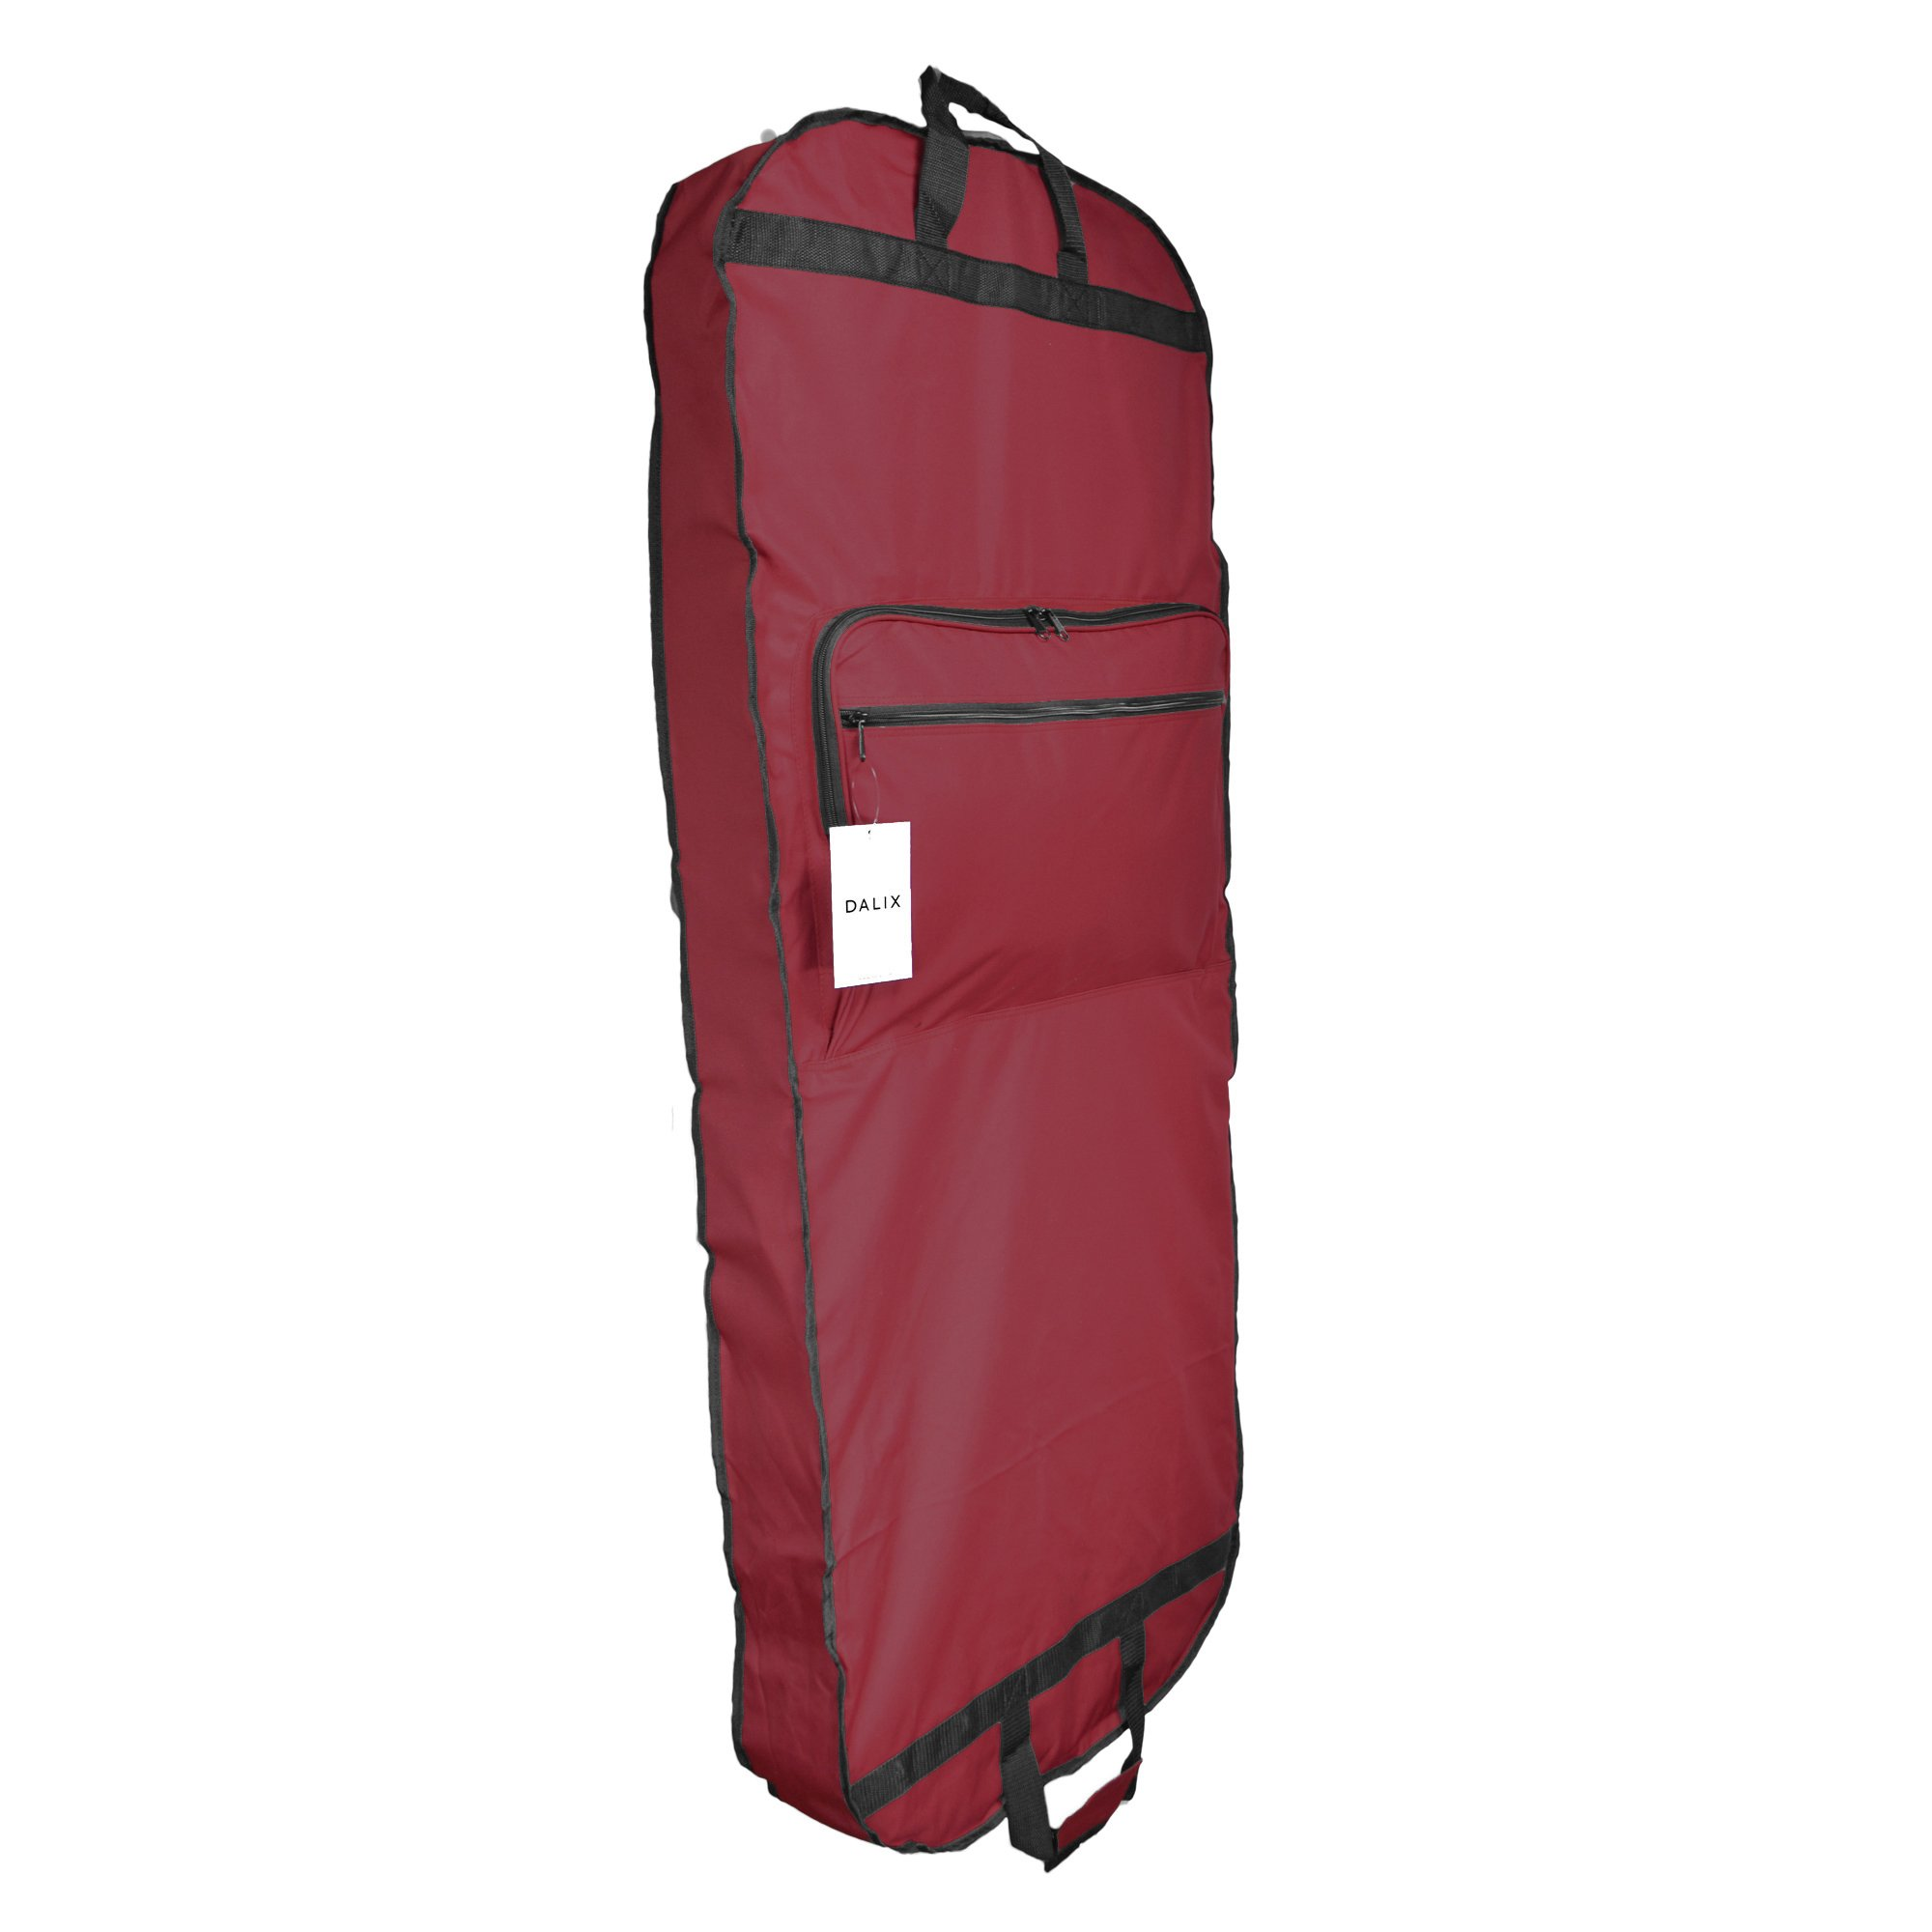 DALIX 60'' Professional Garment Bag Cover for Suits Pants & Gowns Dresses (Foldable) (Maroon)